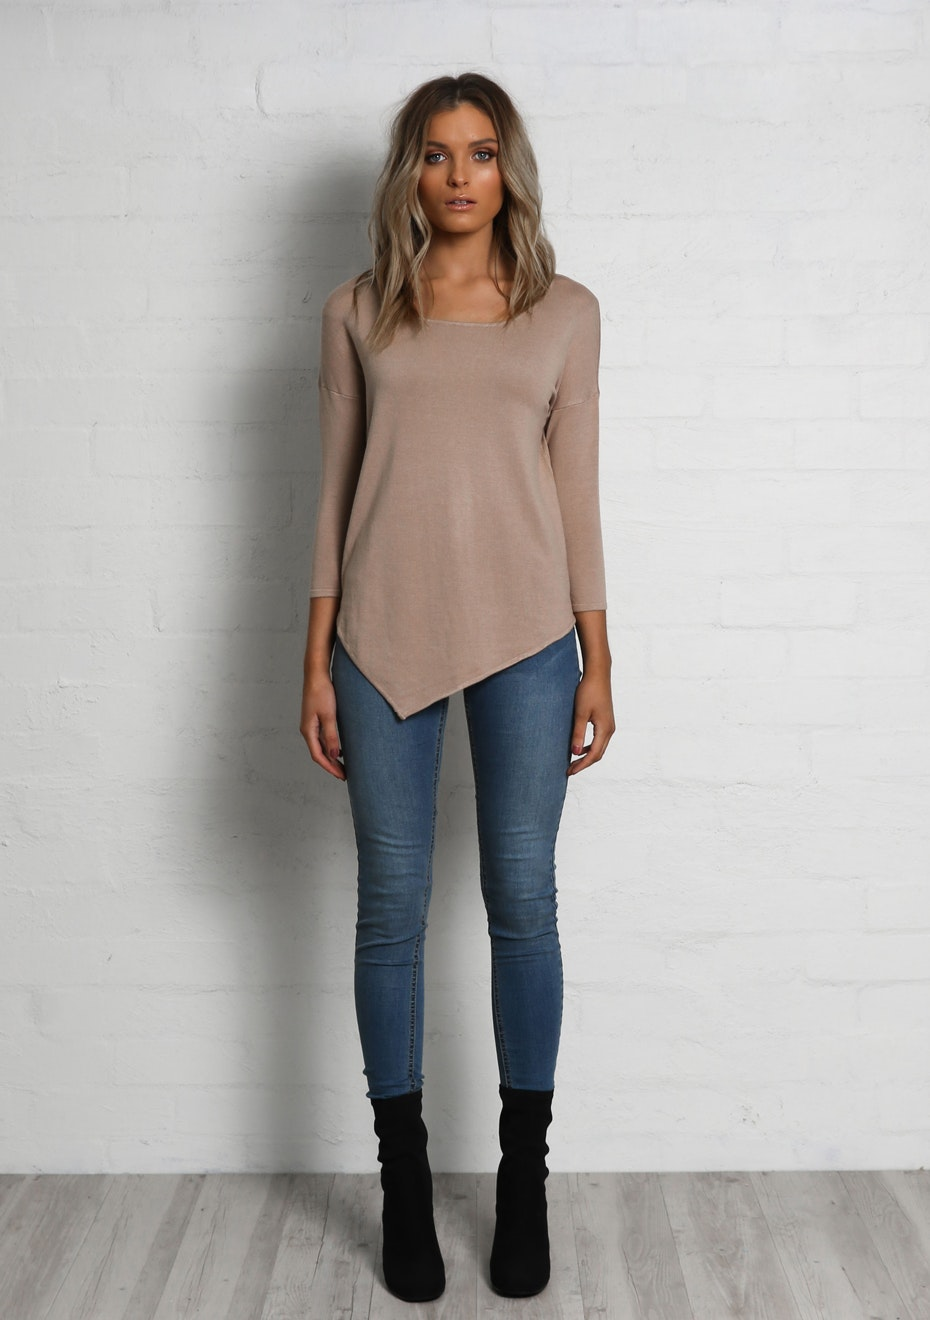 Madison - BUILDING BLOCKS KNIT - NUDE